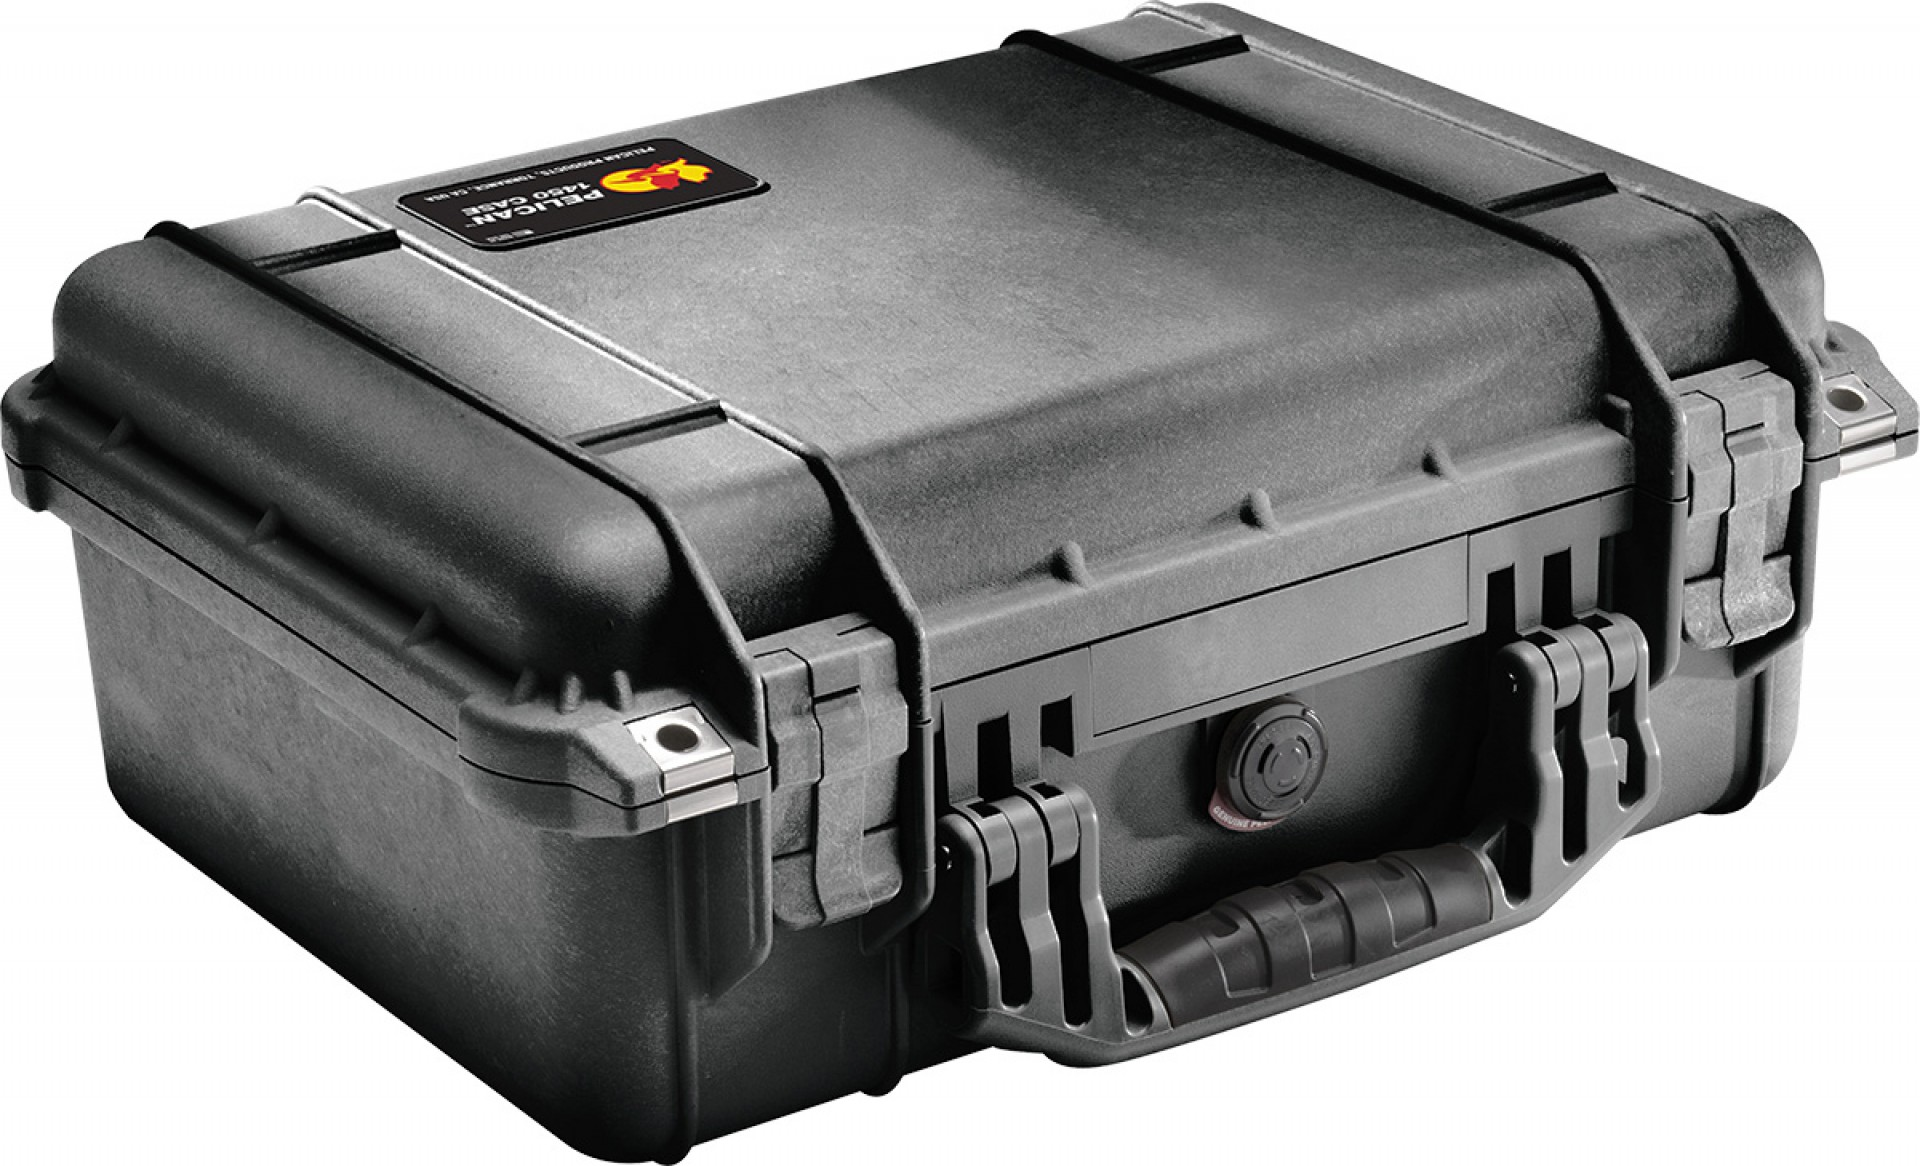 PELI 1450 Plastic Case Black